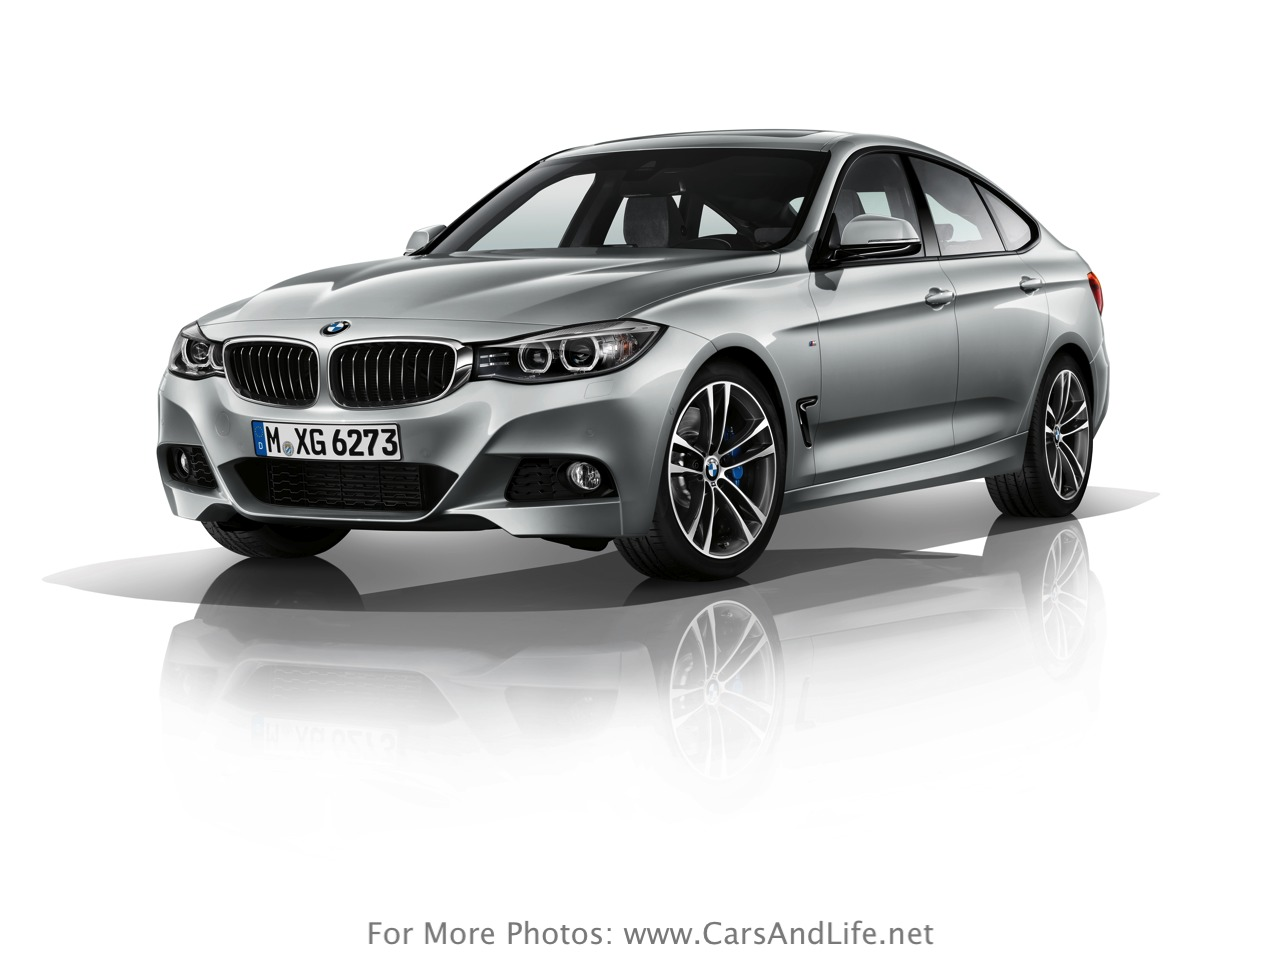 new bmw 3 series gran turismo or 3 gt all photos cars. Black Bedroom Furniture Sets. Home Design Ideas